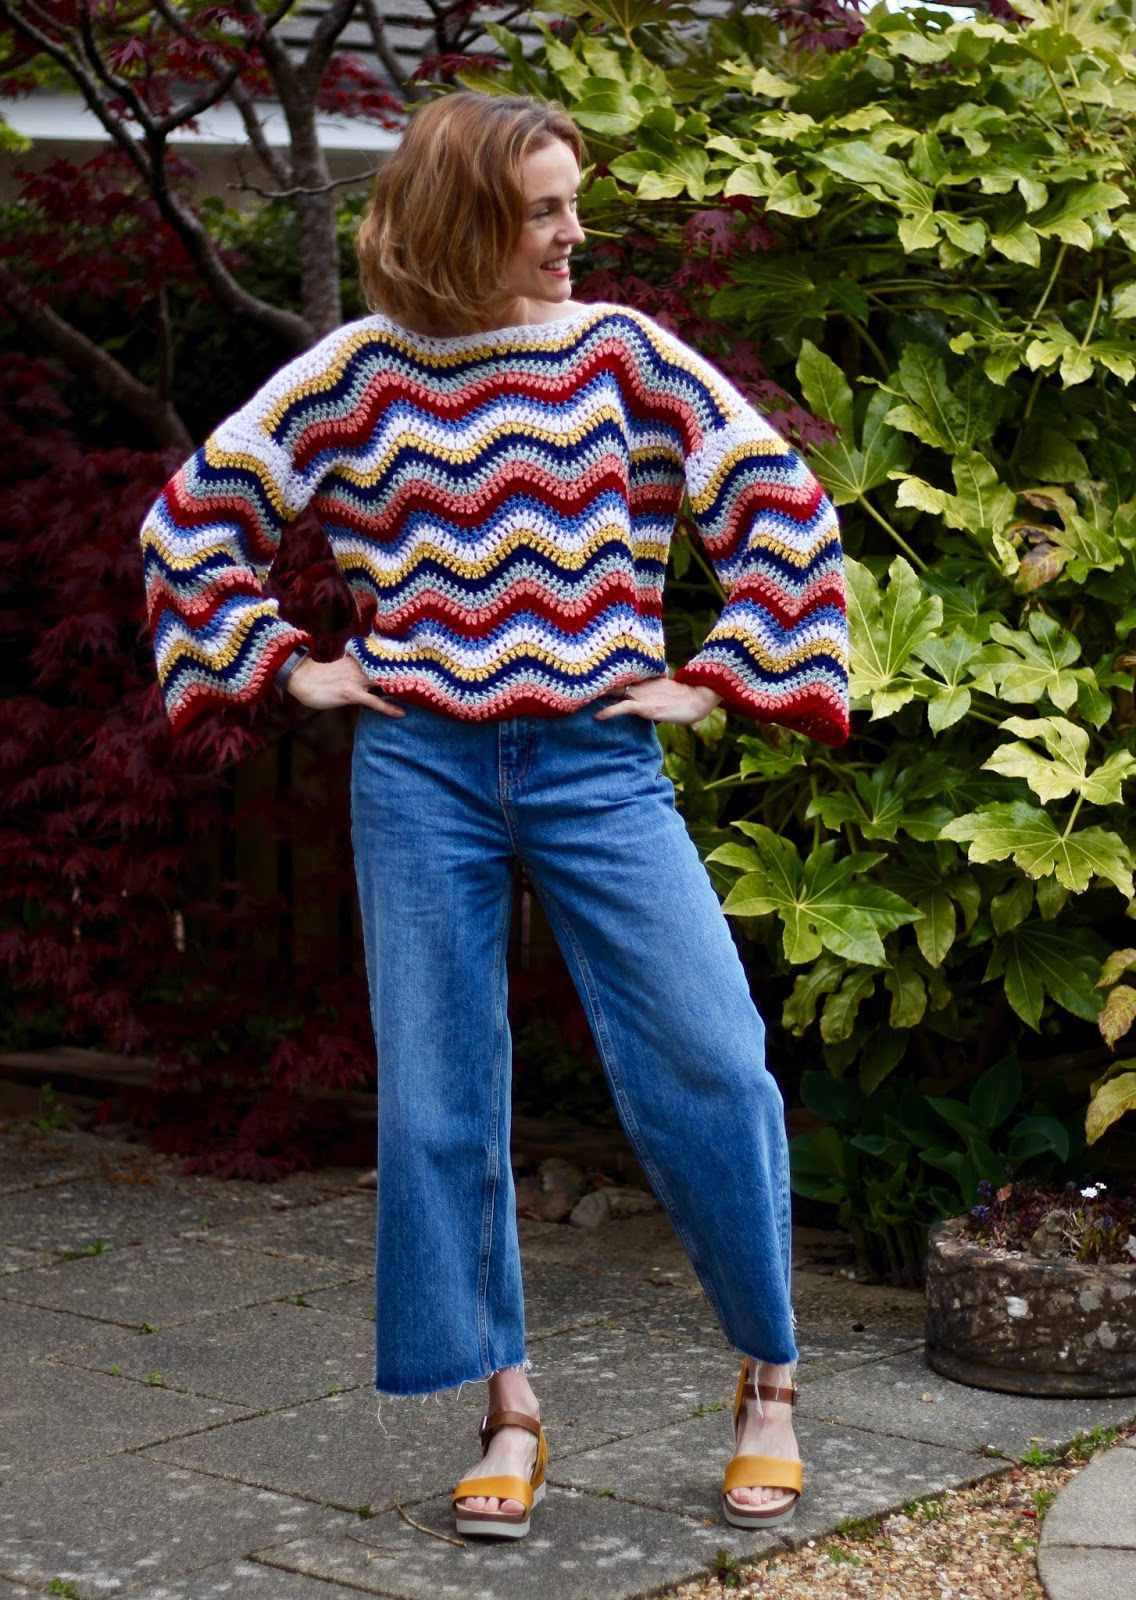 Homemade crochet jumper & culotte jeans | Spring style